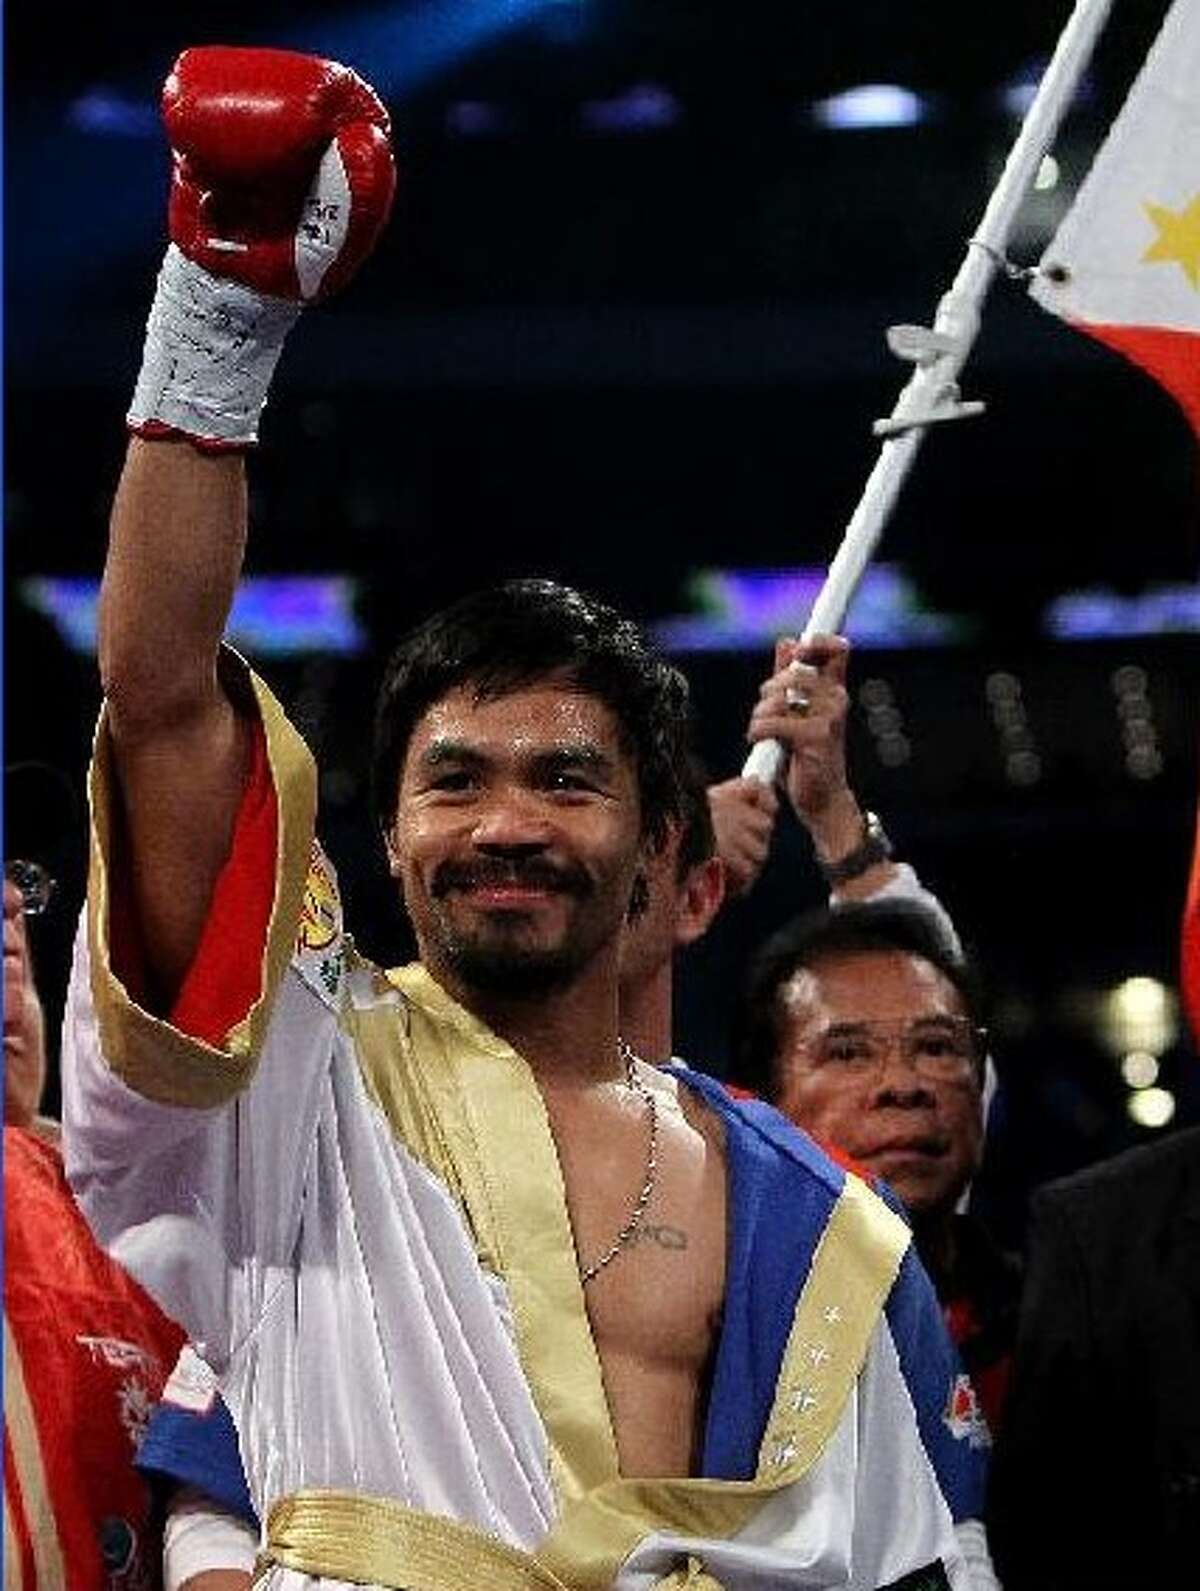 Manny Pacquiao celebrates after last November's victory over Antonio Margarito at Cowboys Stadium in Arlington. For that fight, Pacquiao chartered a 747 to fly in 200 friends and relatives from the Philippines. NICK LAHAM/GETTY IMAGES